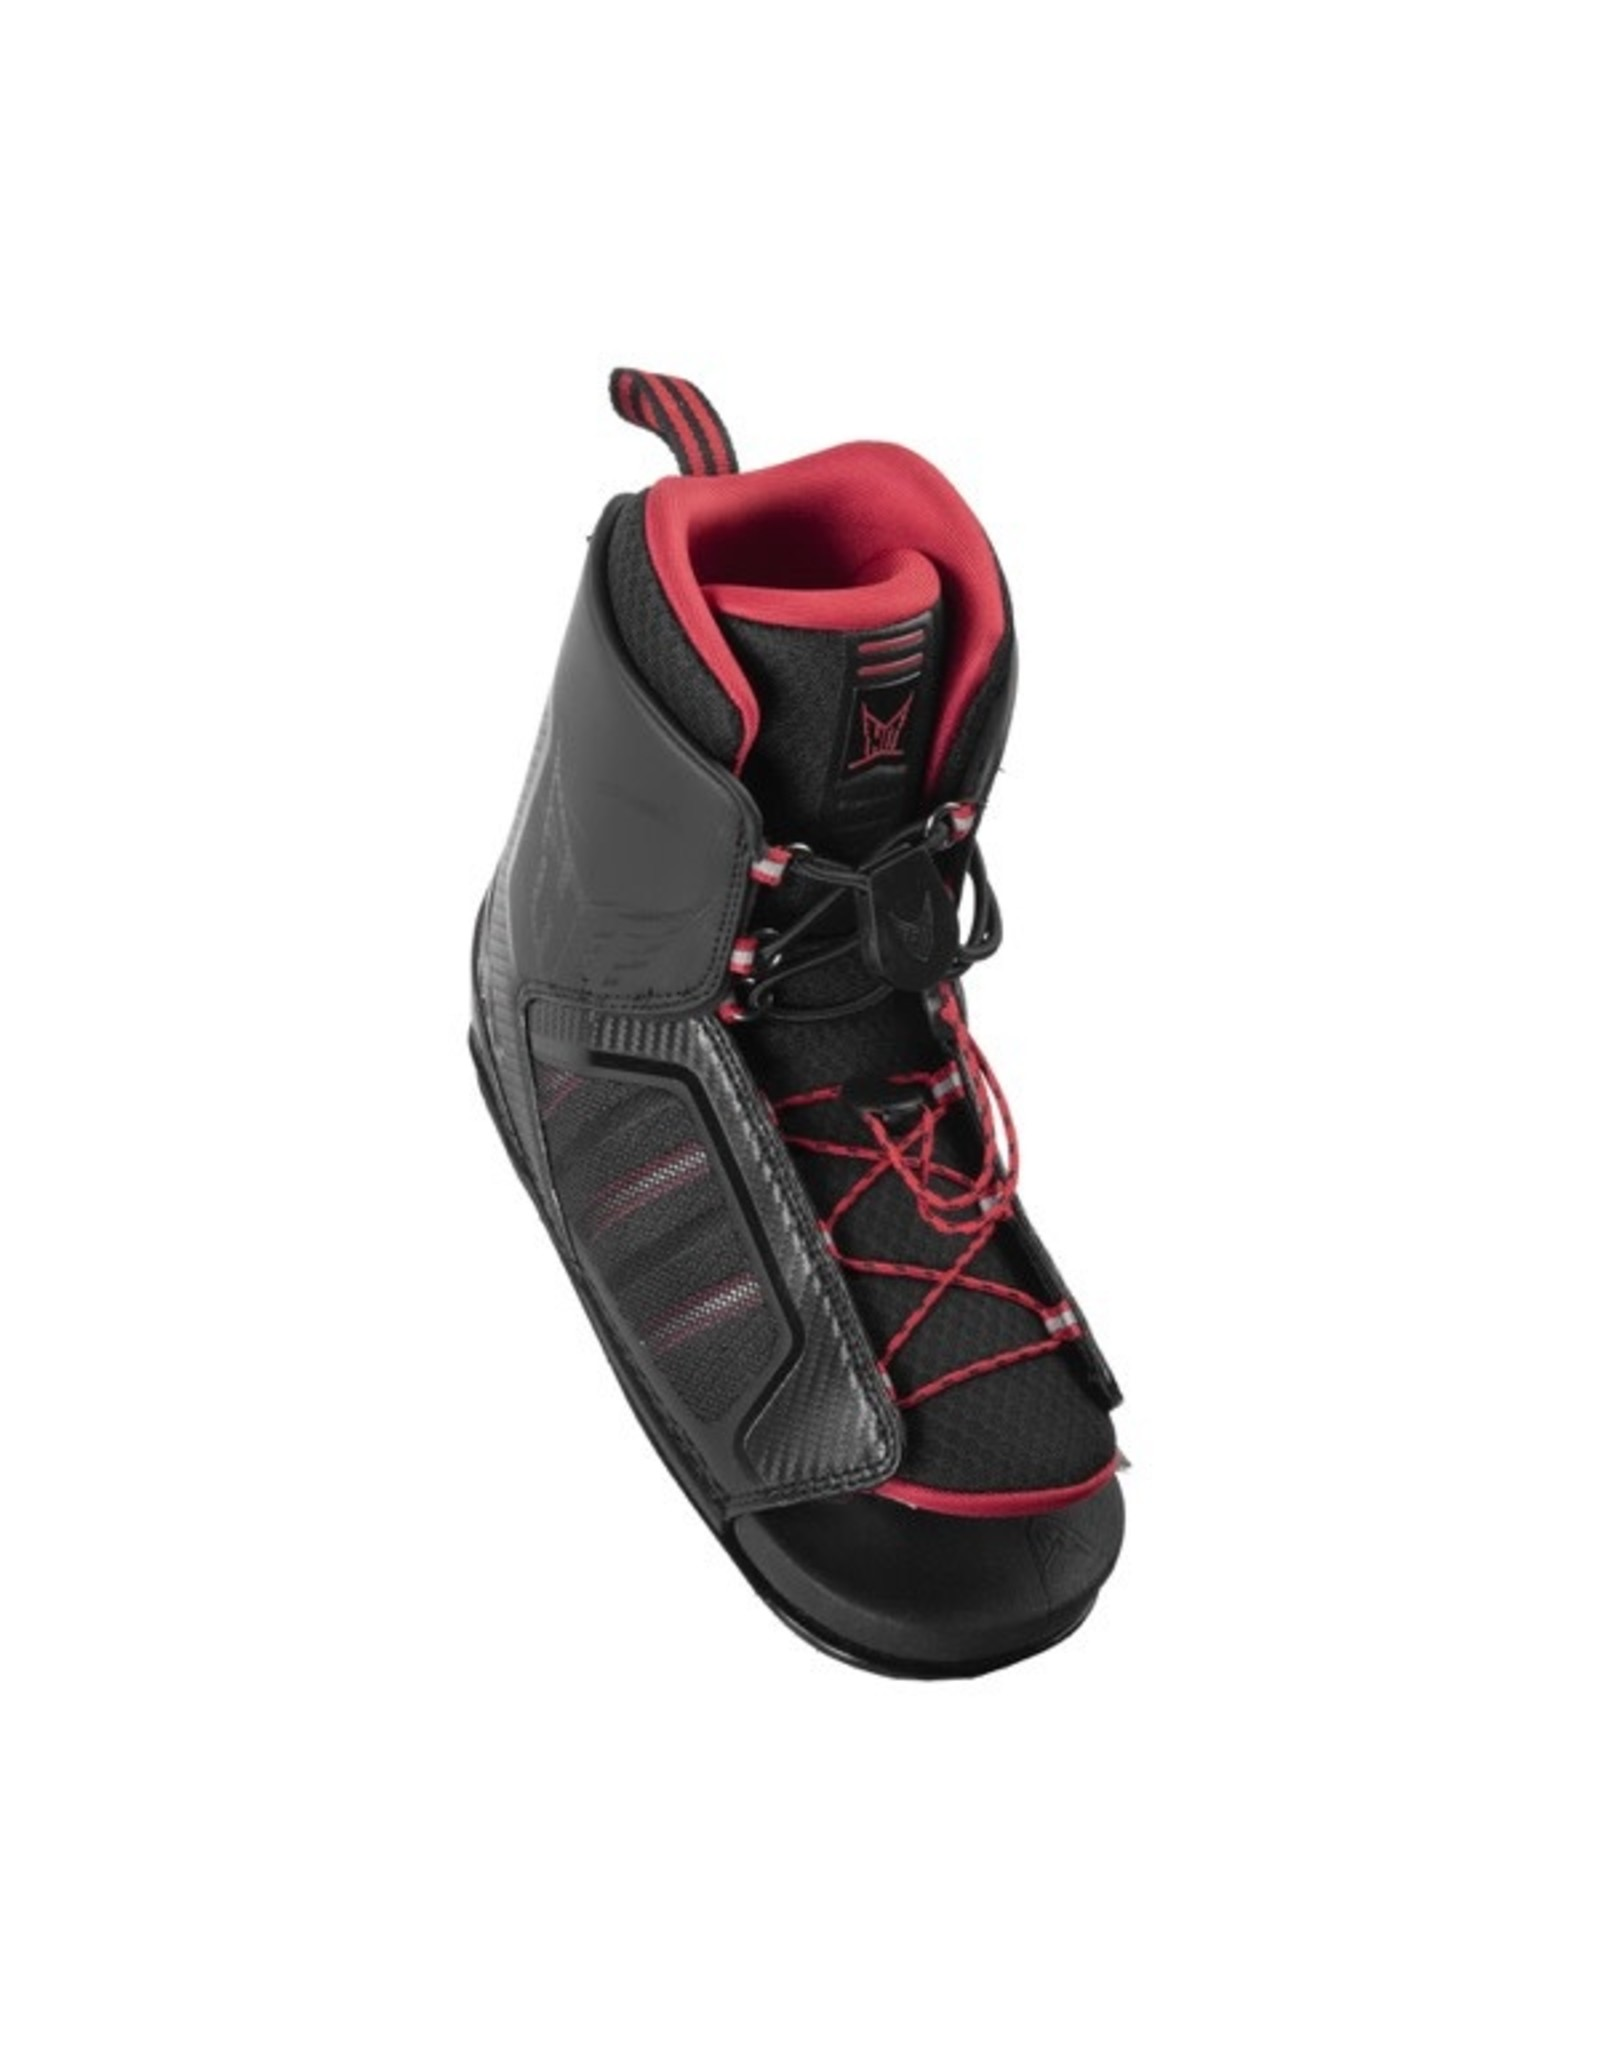 HO/Hyperlite xMAX Direct Connect Slalom Boot 2019